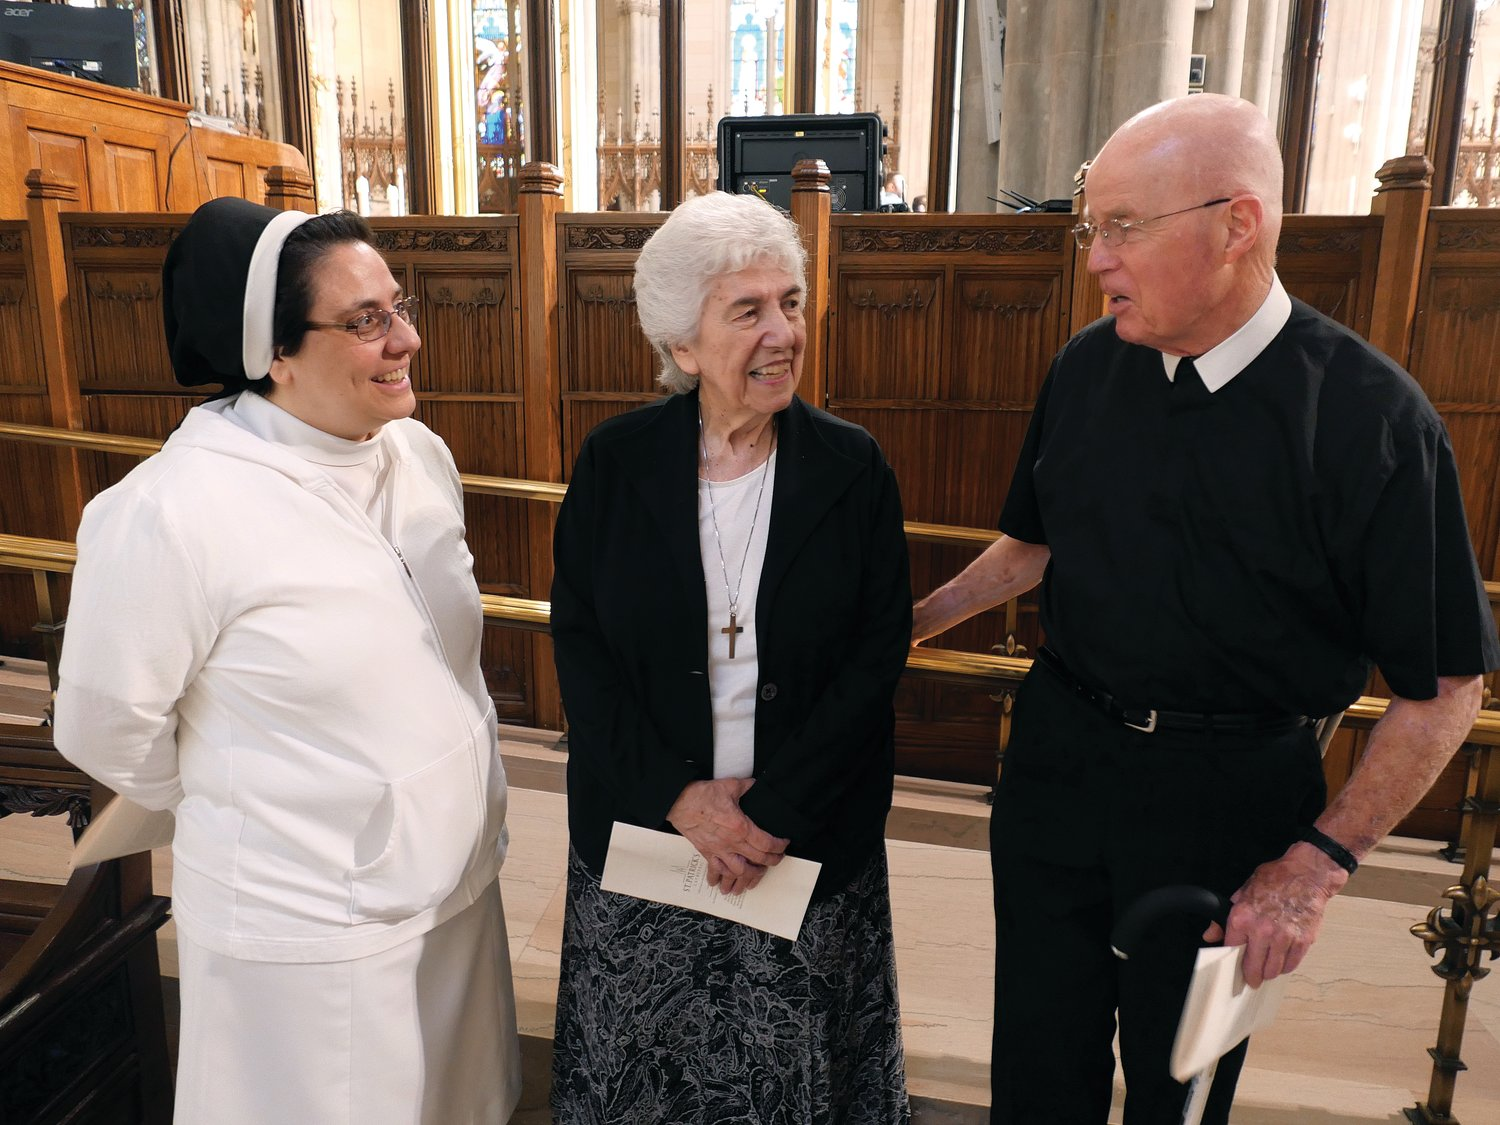 Sister Diane Mastroianni, A.S.C.J., Sister Deanna Sabetta, C.N.D. and Brother Joseph Reilly, F.S.C., who delivered the readings and prayer petitions at the 10:15 a.m. liturgy, converse after Mass.